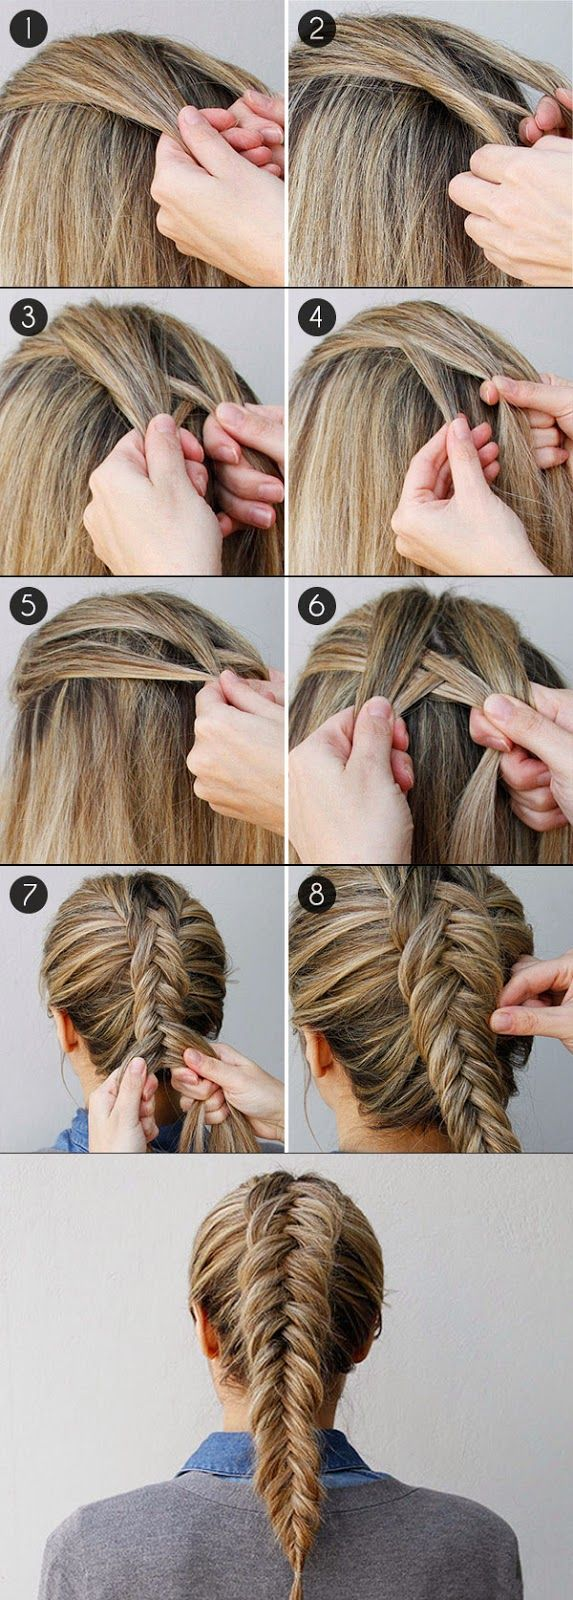 Find This Pin And More On Braids How To Fishtail French Braid